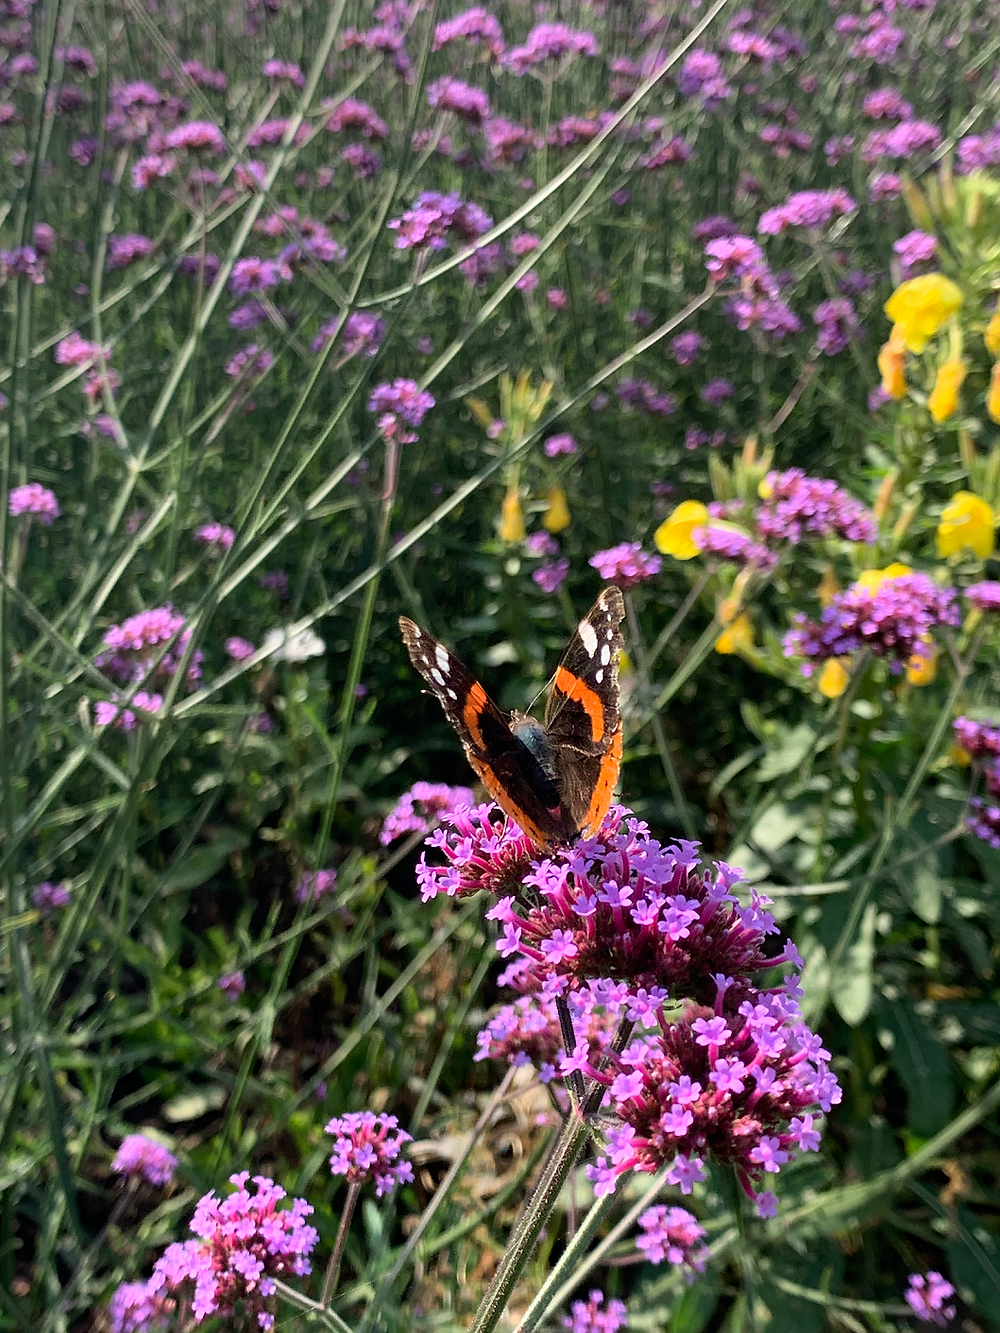 Purple and yellow flowers with a butterfly